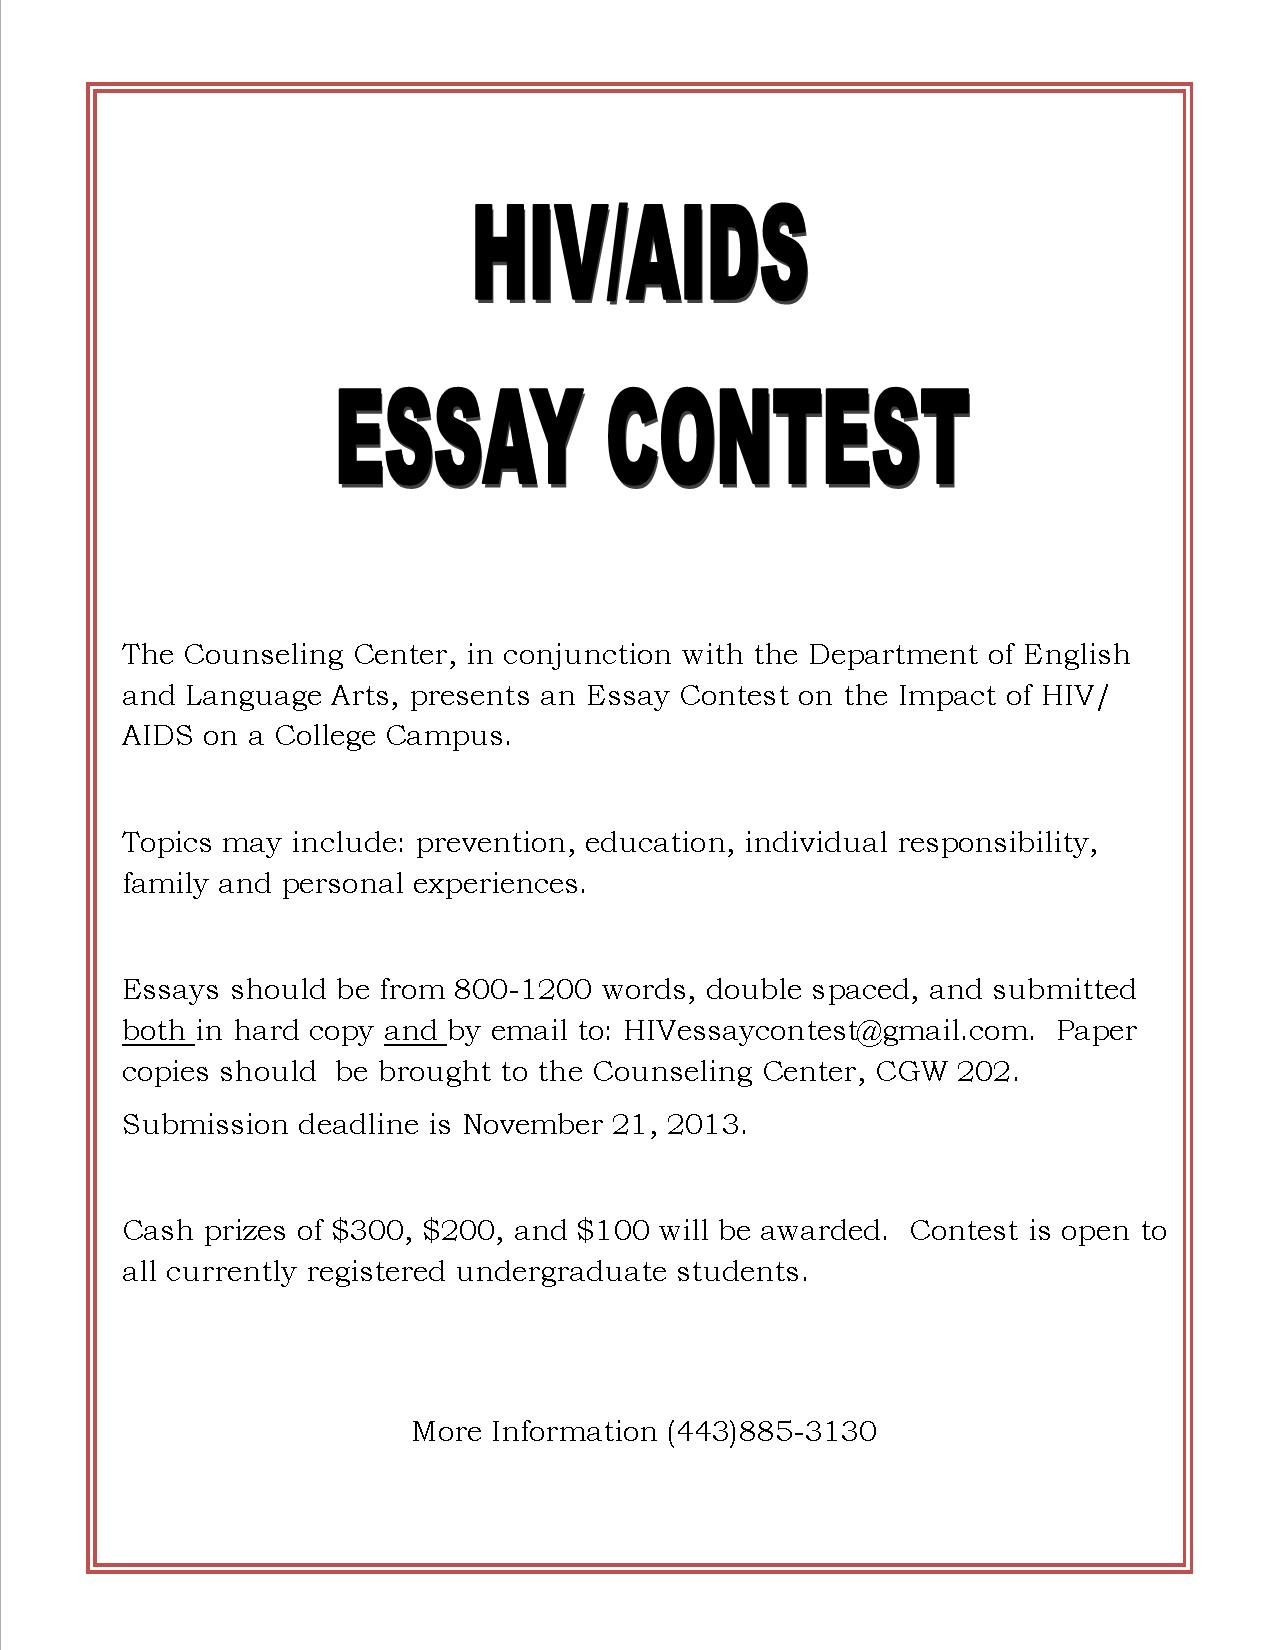 006 Essay Example Hiv Aids Essays Flyer Tamil Awareness Epidemic In Africa Hivaids On Pediatric About Research Phenomenal Hindi Pdf Topics Full